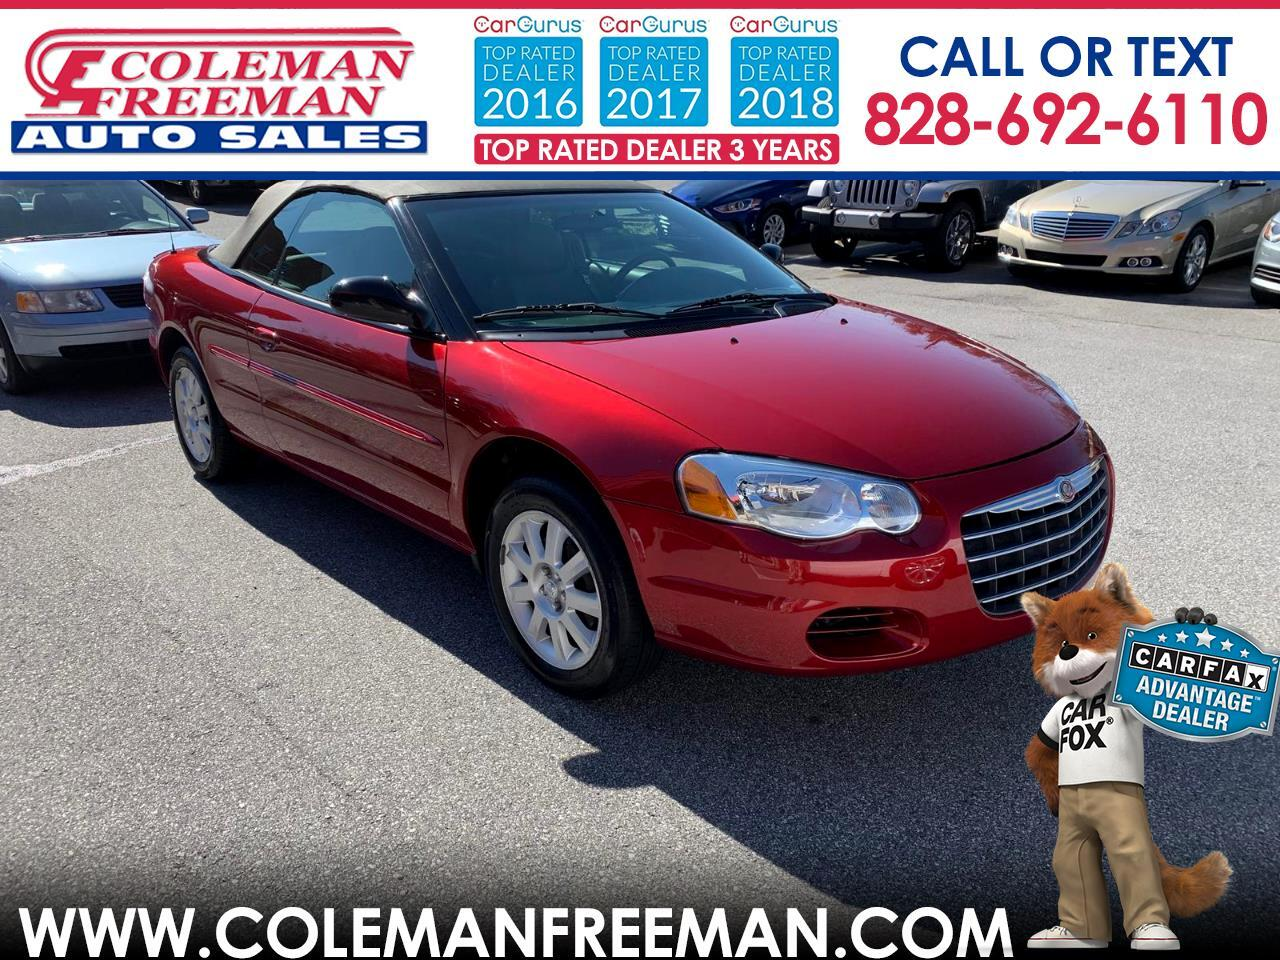 2004 Chrysler Sebring 2004 2dr Convertible GTC